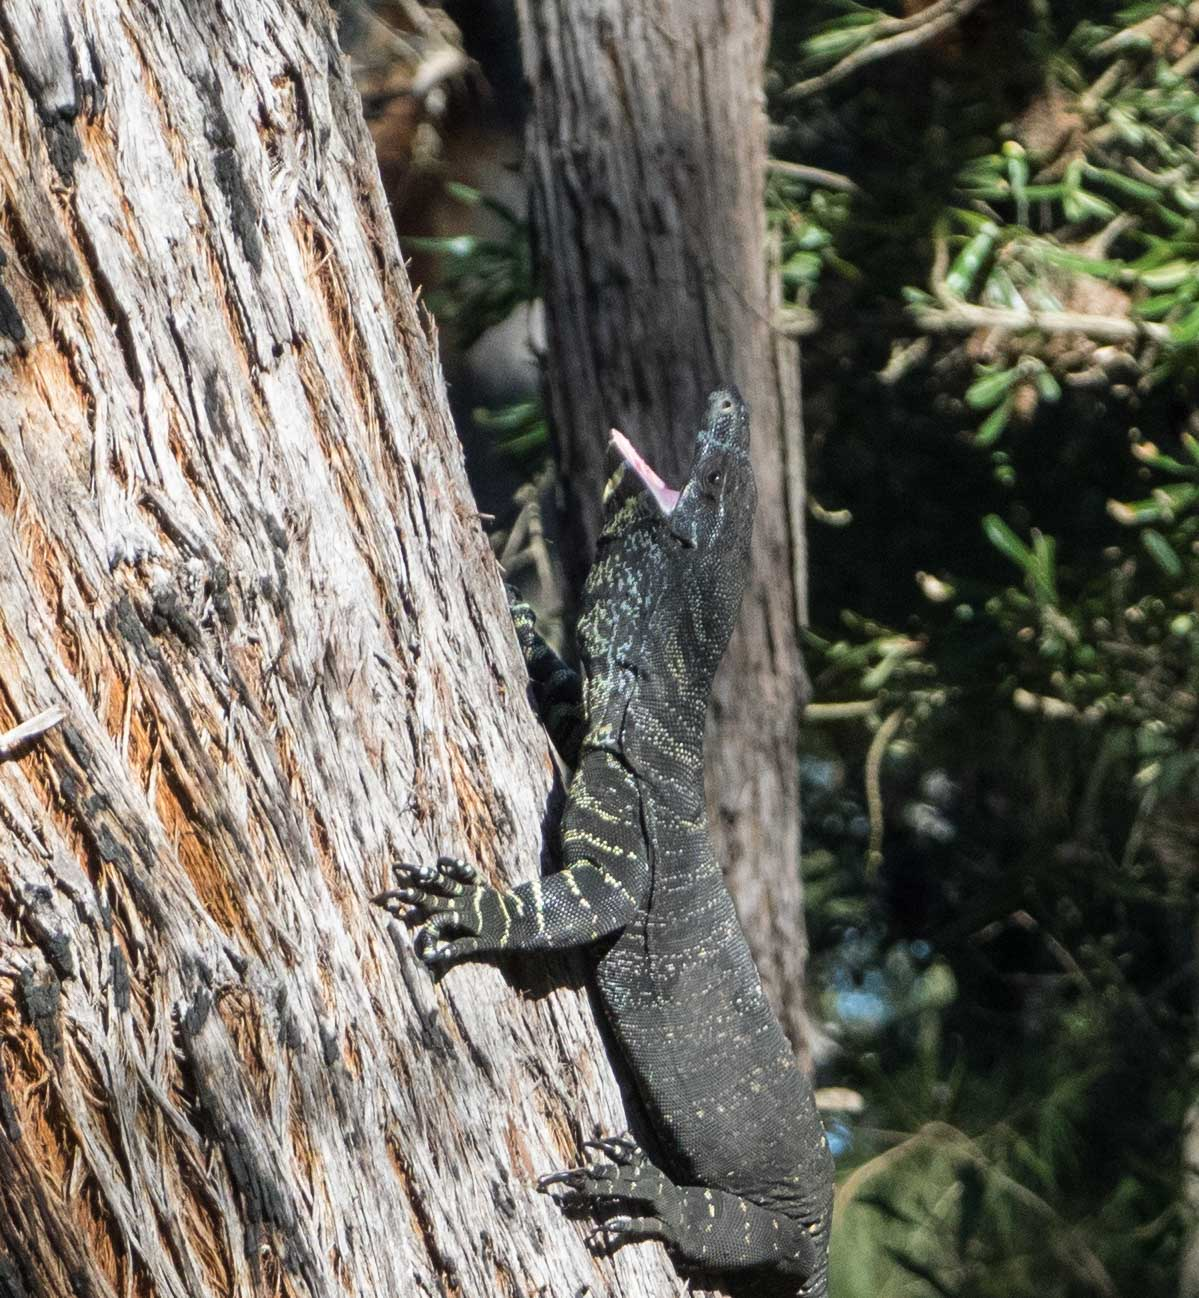 The goanna responds to the screaming Currawong with an impressive, open-mouthed 'hiss'.